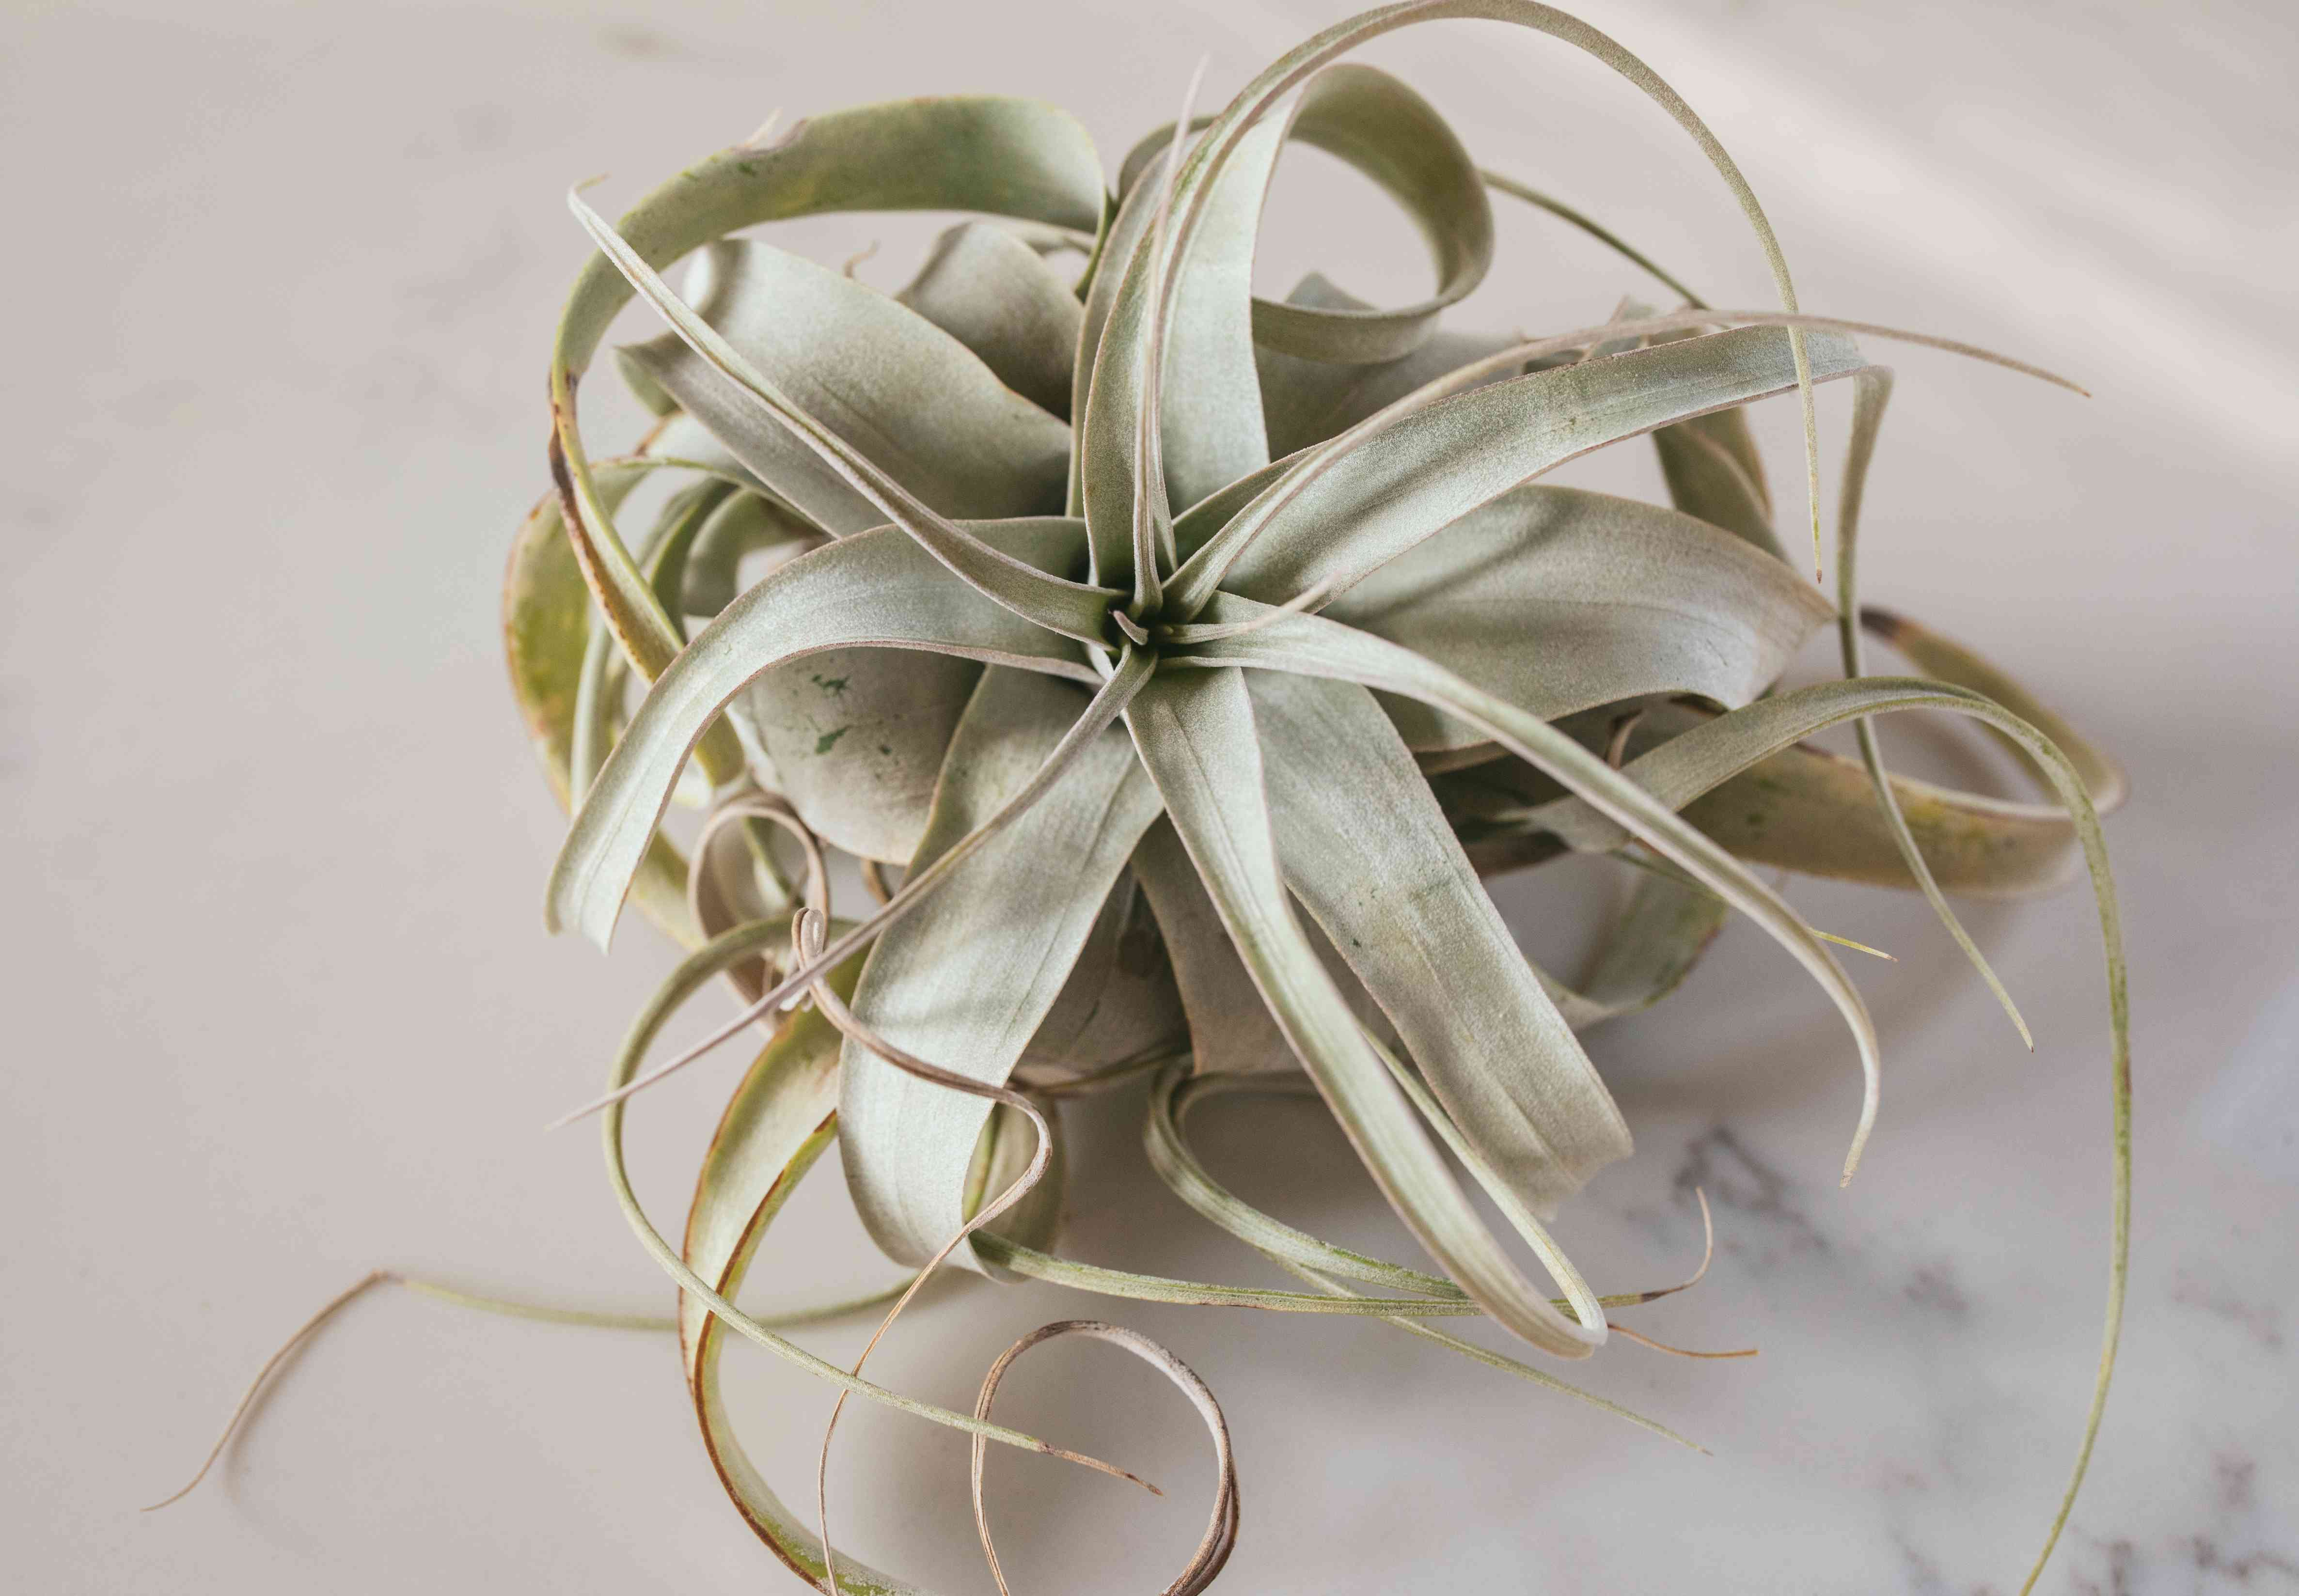 close up shot of mint green air plant on white marble background